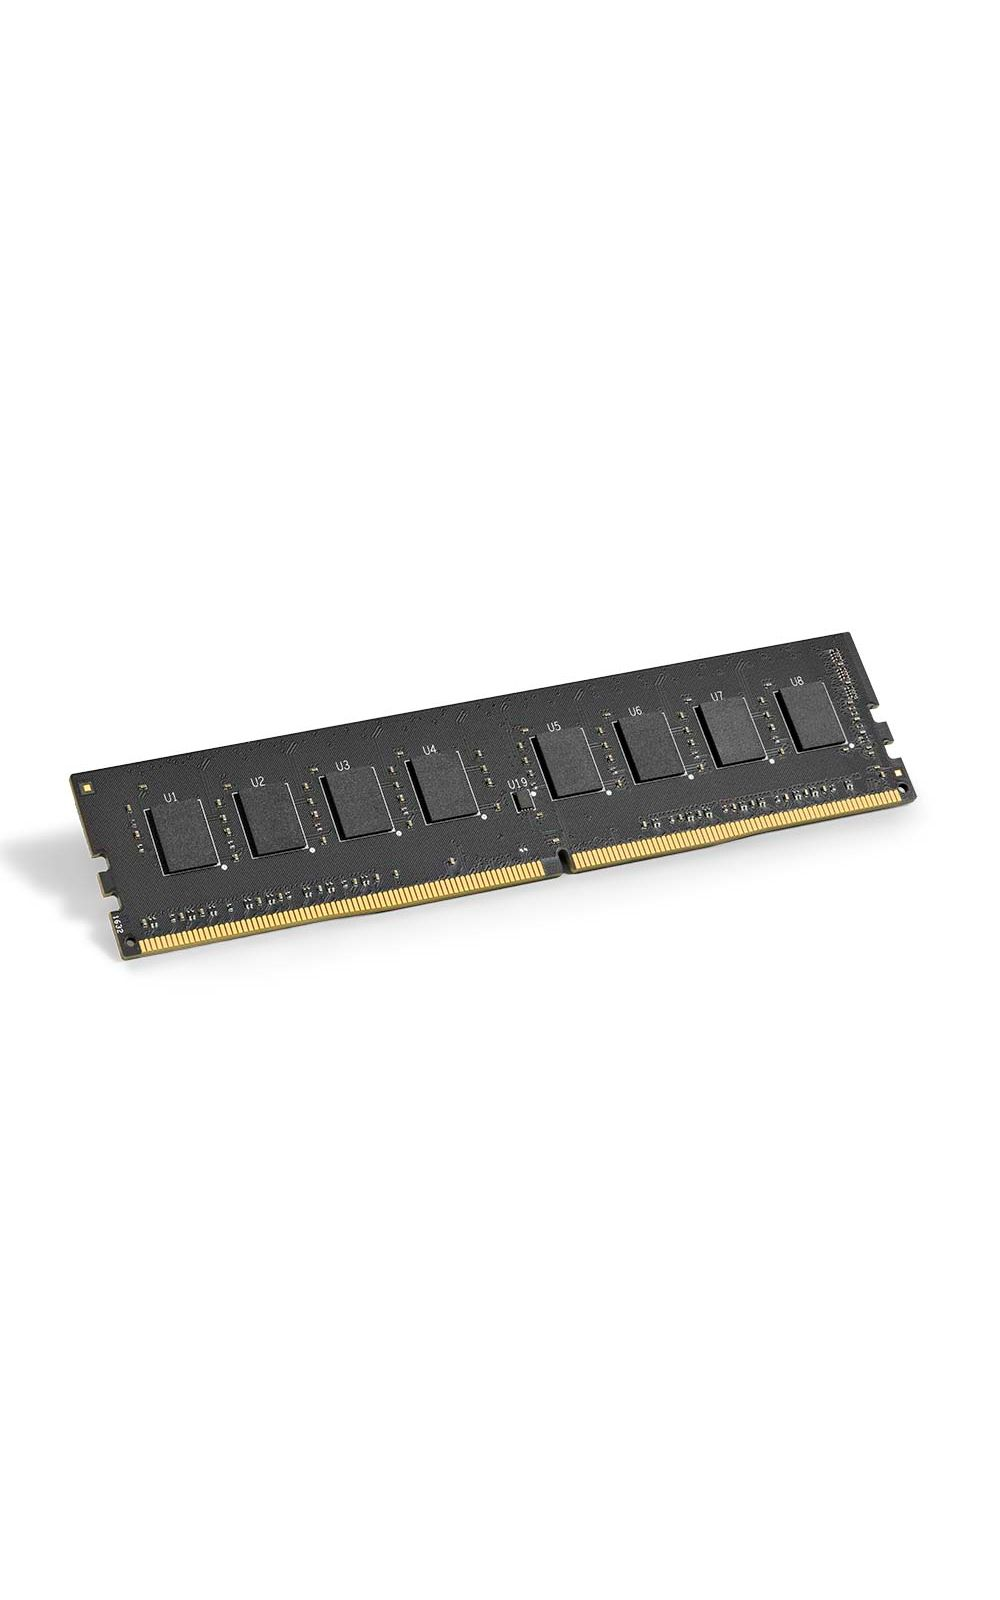 Foto 1 - Memória Dimm Ddr4 4Gb Pc4-19200 Multilaser - MM414